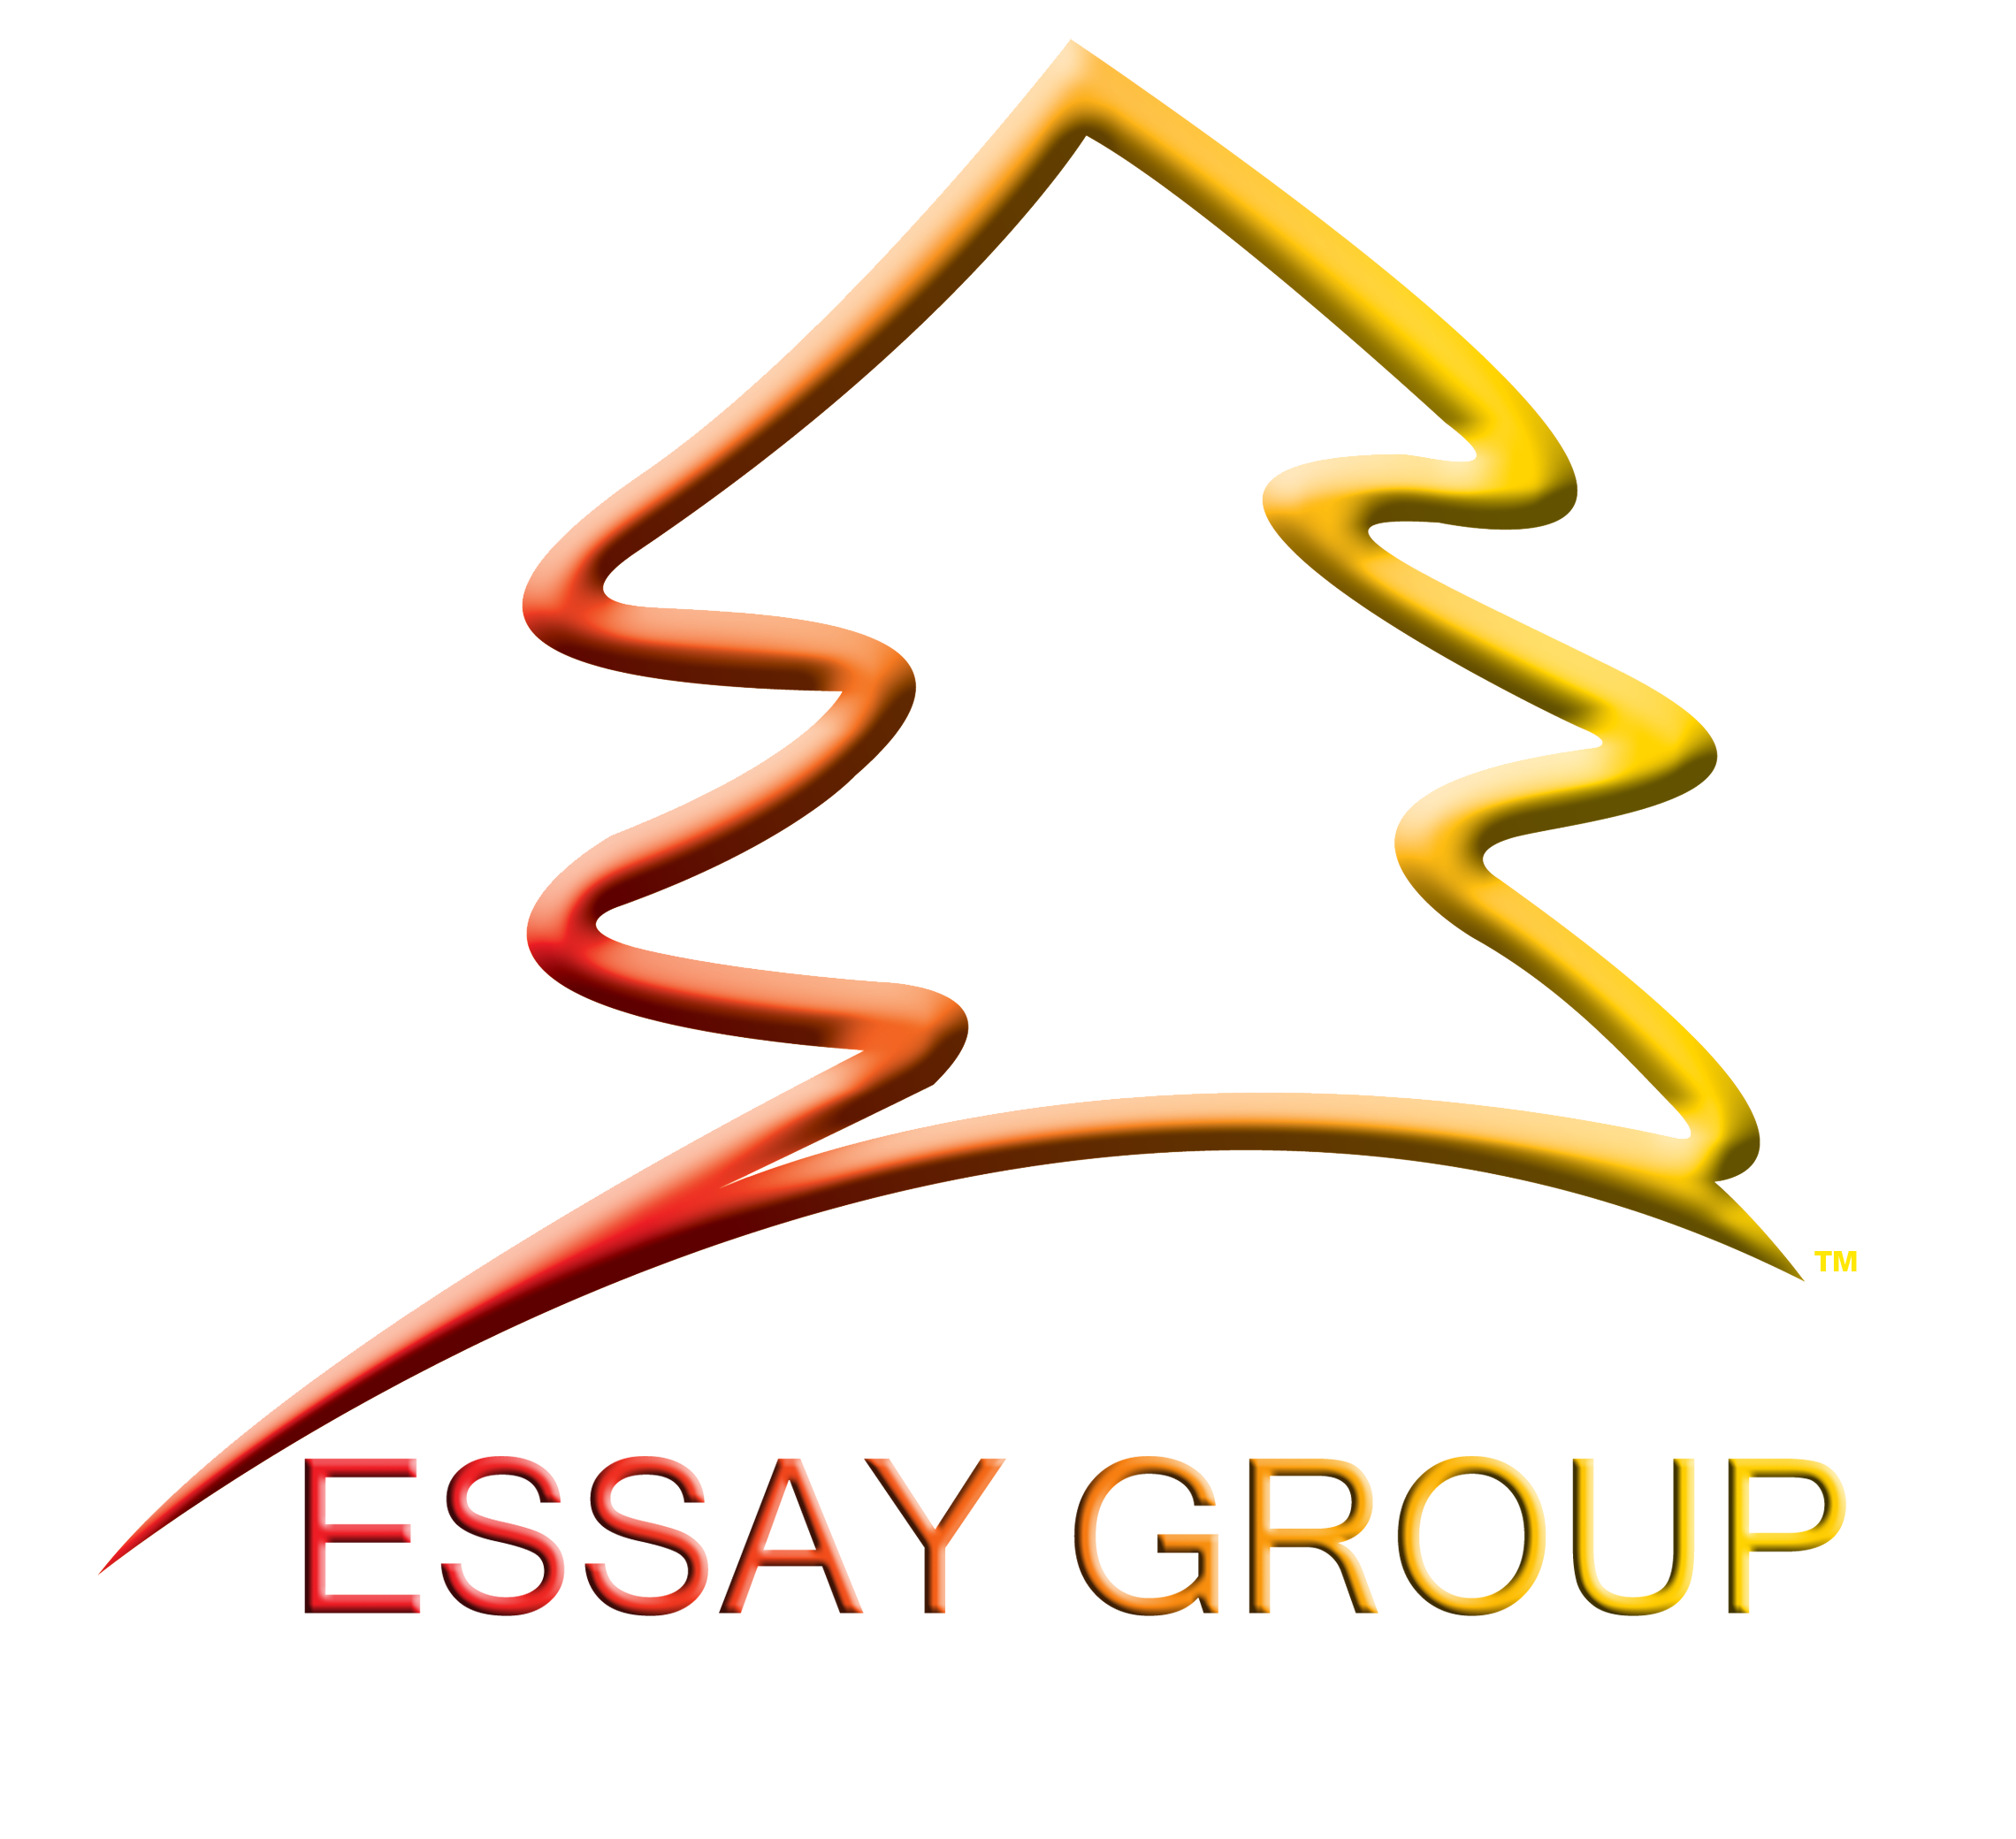 essay group lyndhurst nj Essay group llc in lyndhurst, nj - bergen county is a business listed in the categories firewood, other fuel dealers and fuel dealers, nec if you did business with essay group llc, please leave a review and help us improve and help other people.